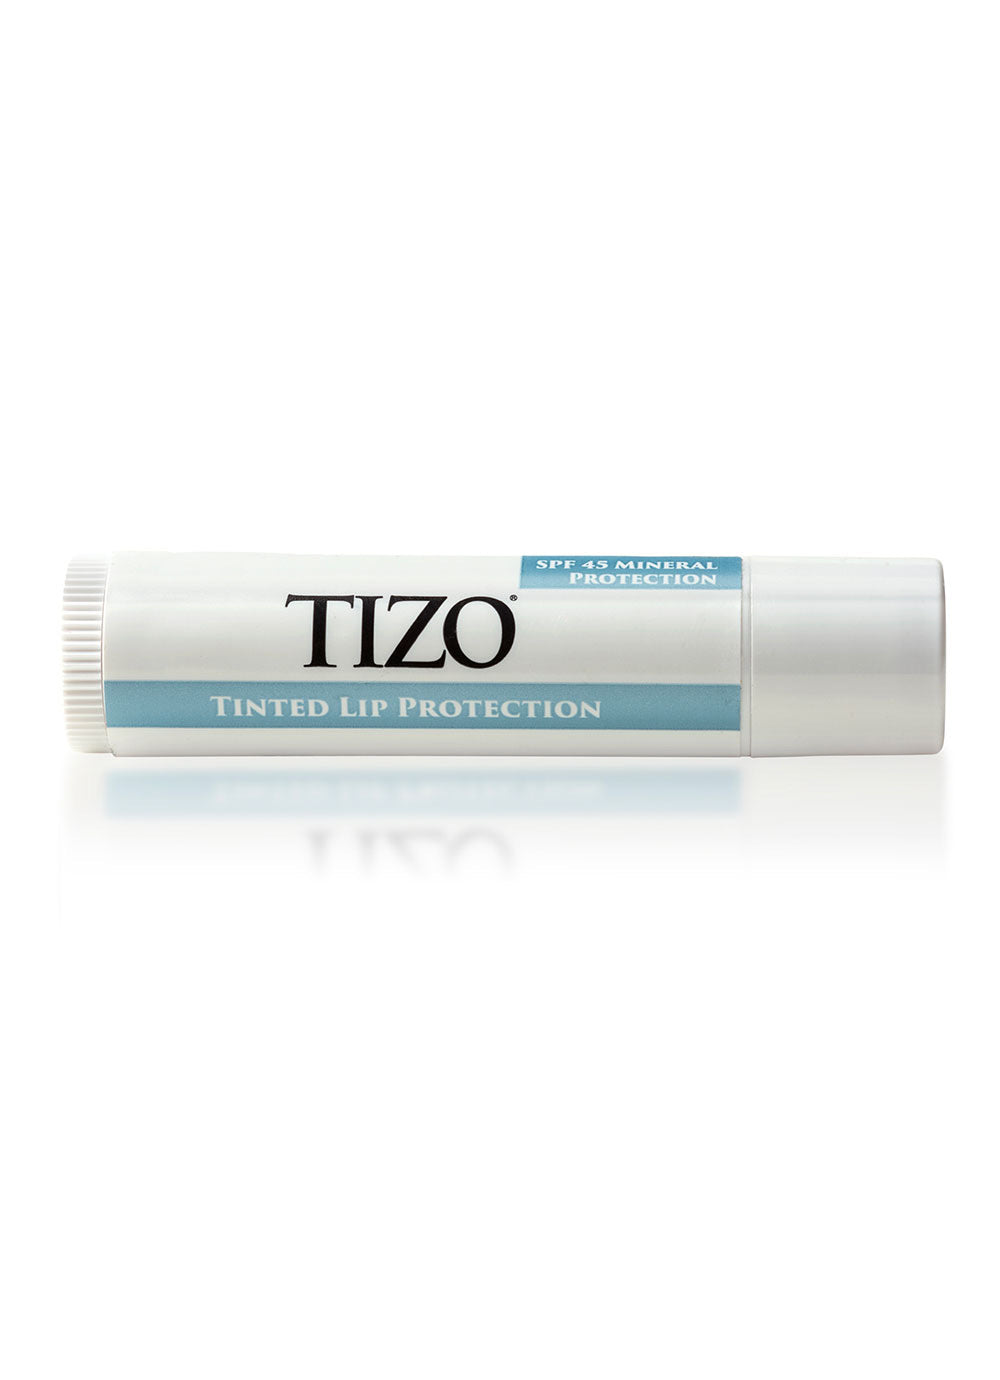 TIZO LIP PROTECTION | Tinted matte finish SPF 45